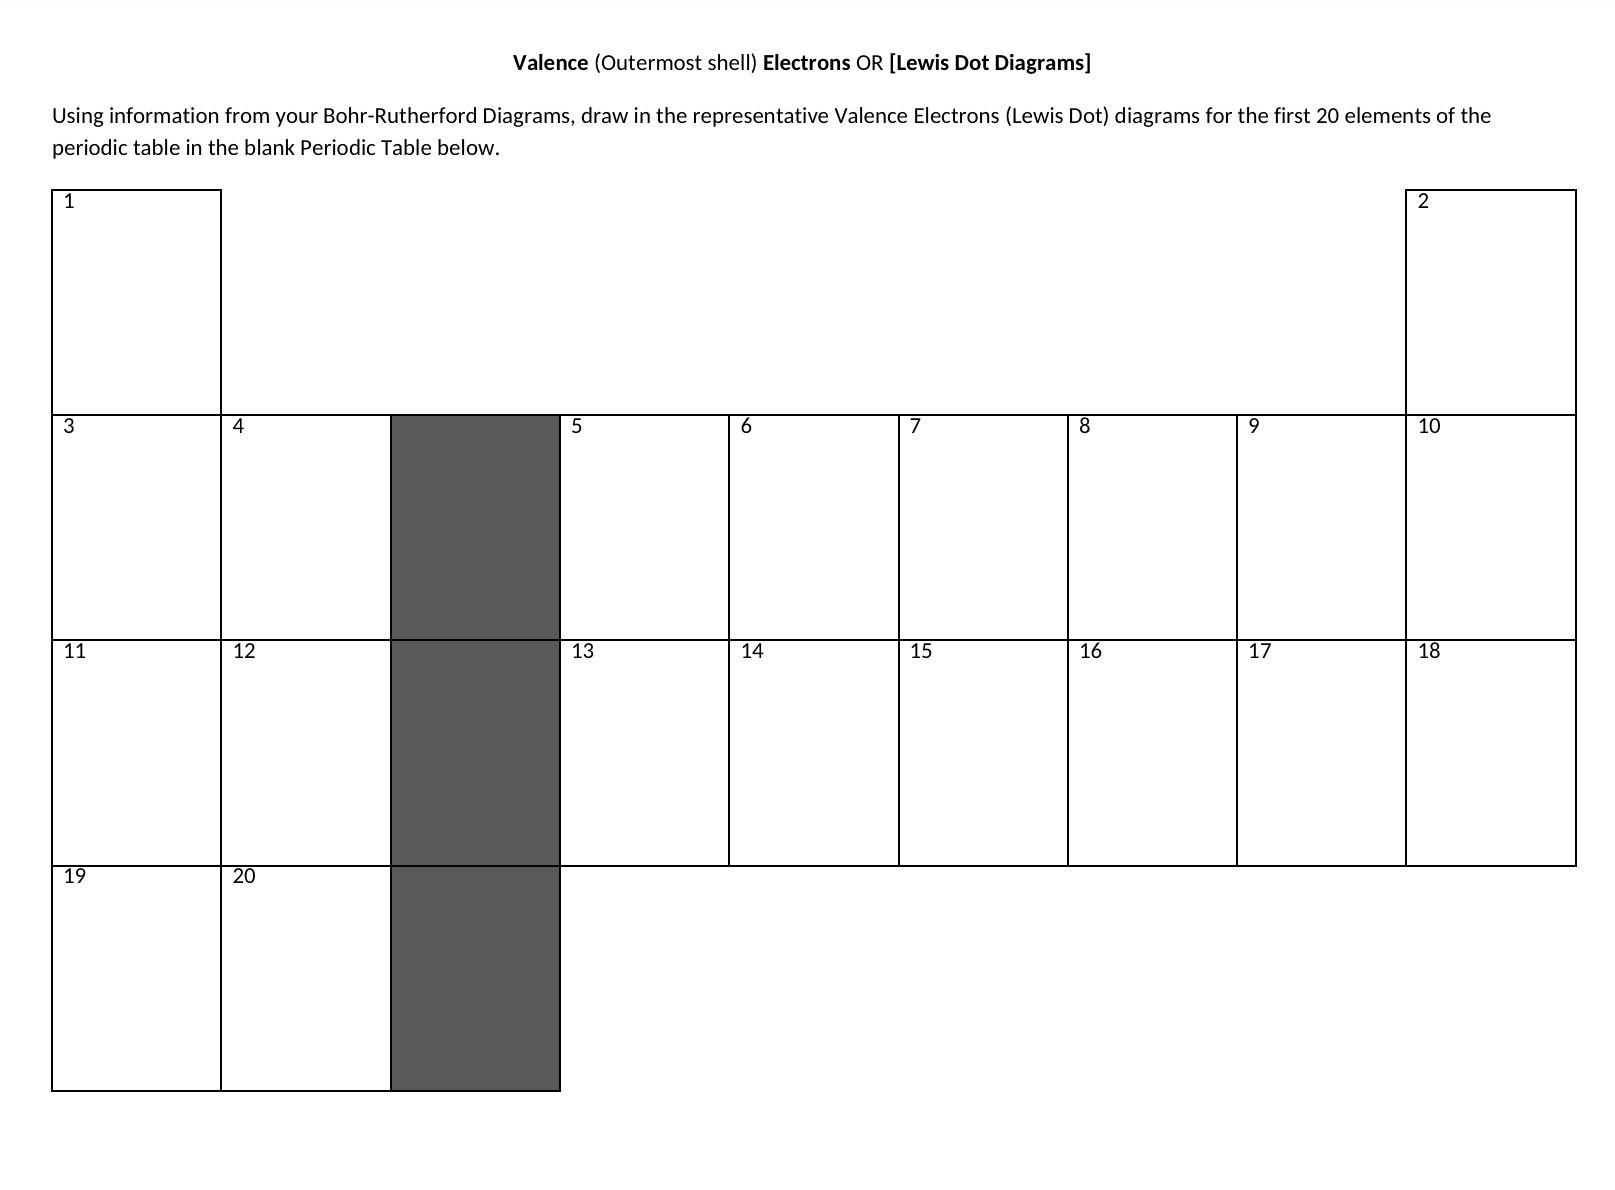 Valence Electron or Lewis-Dot Diagrams - Worksheet - Friday ...